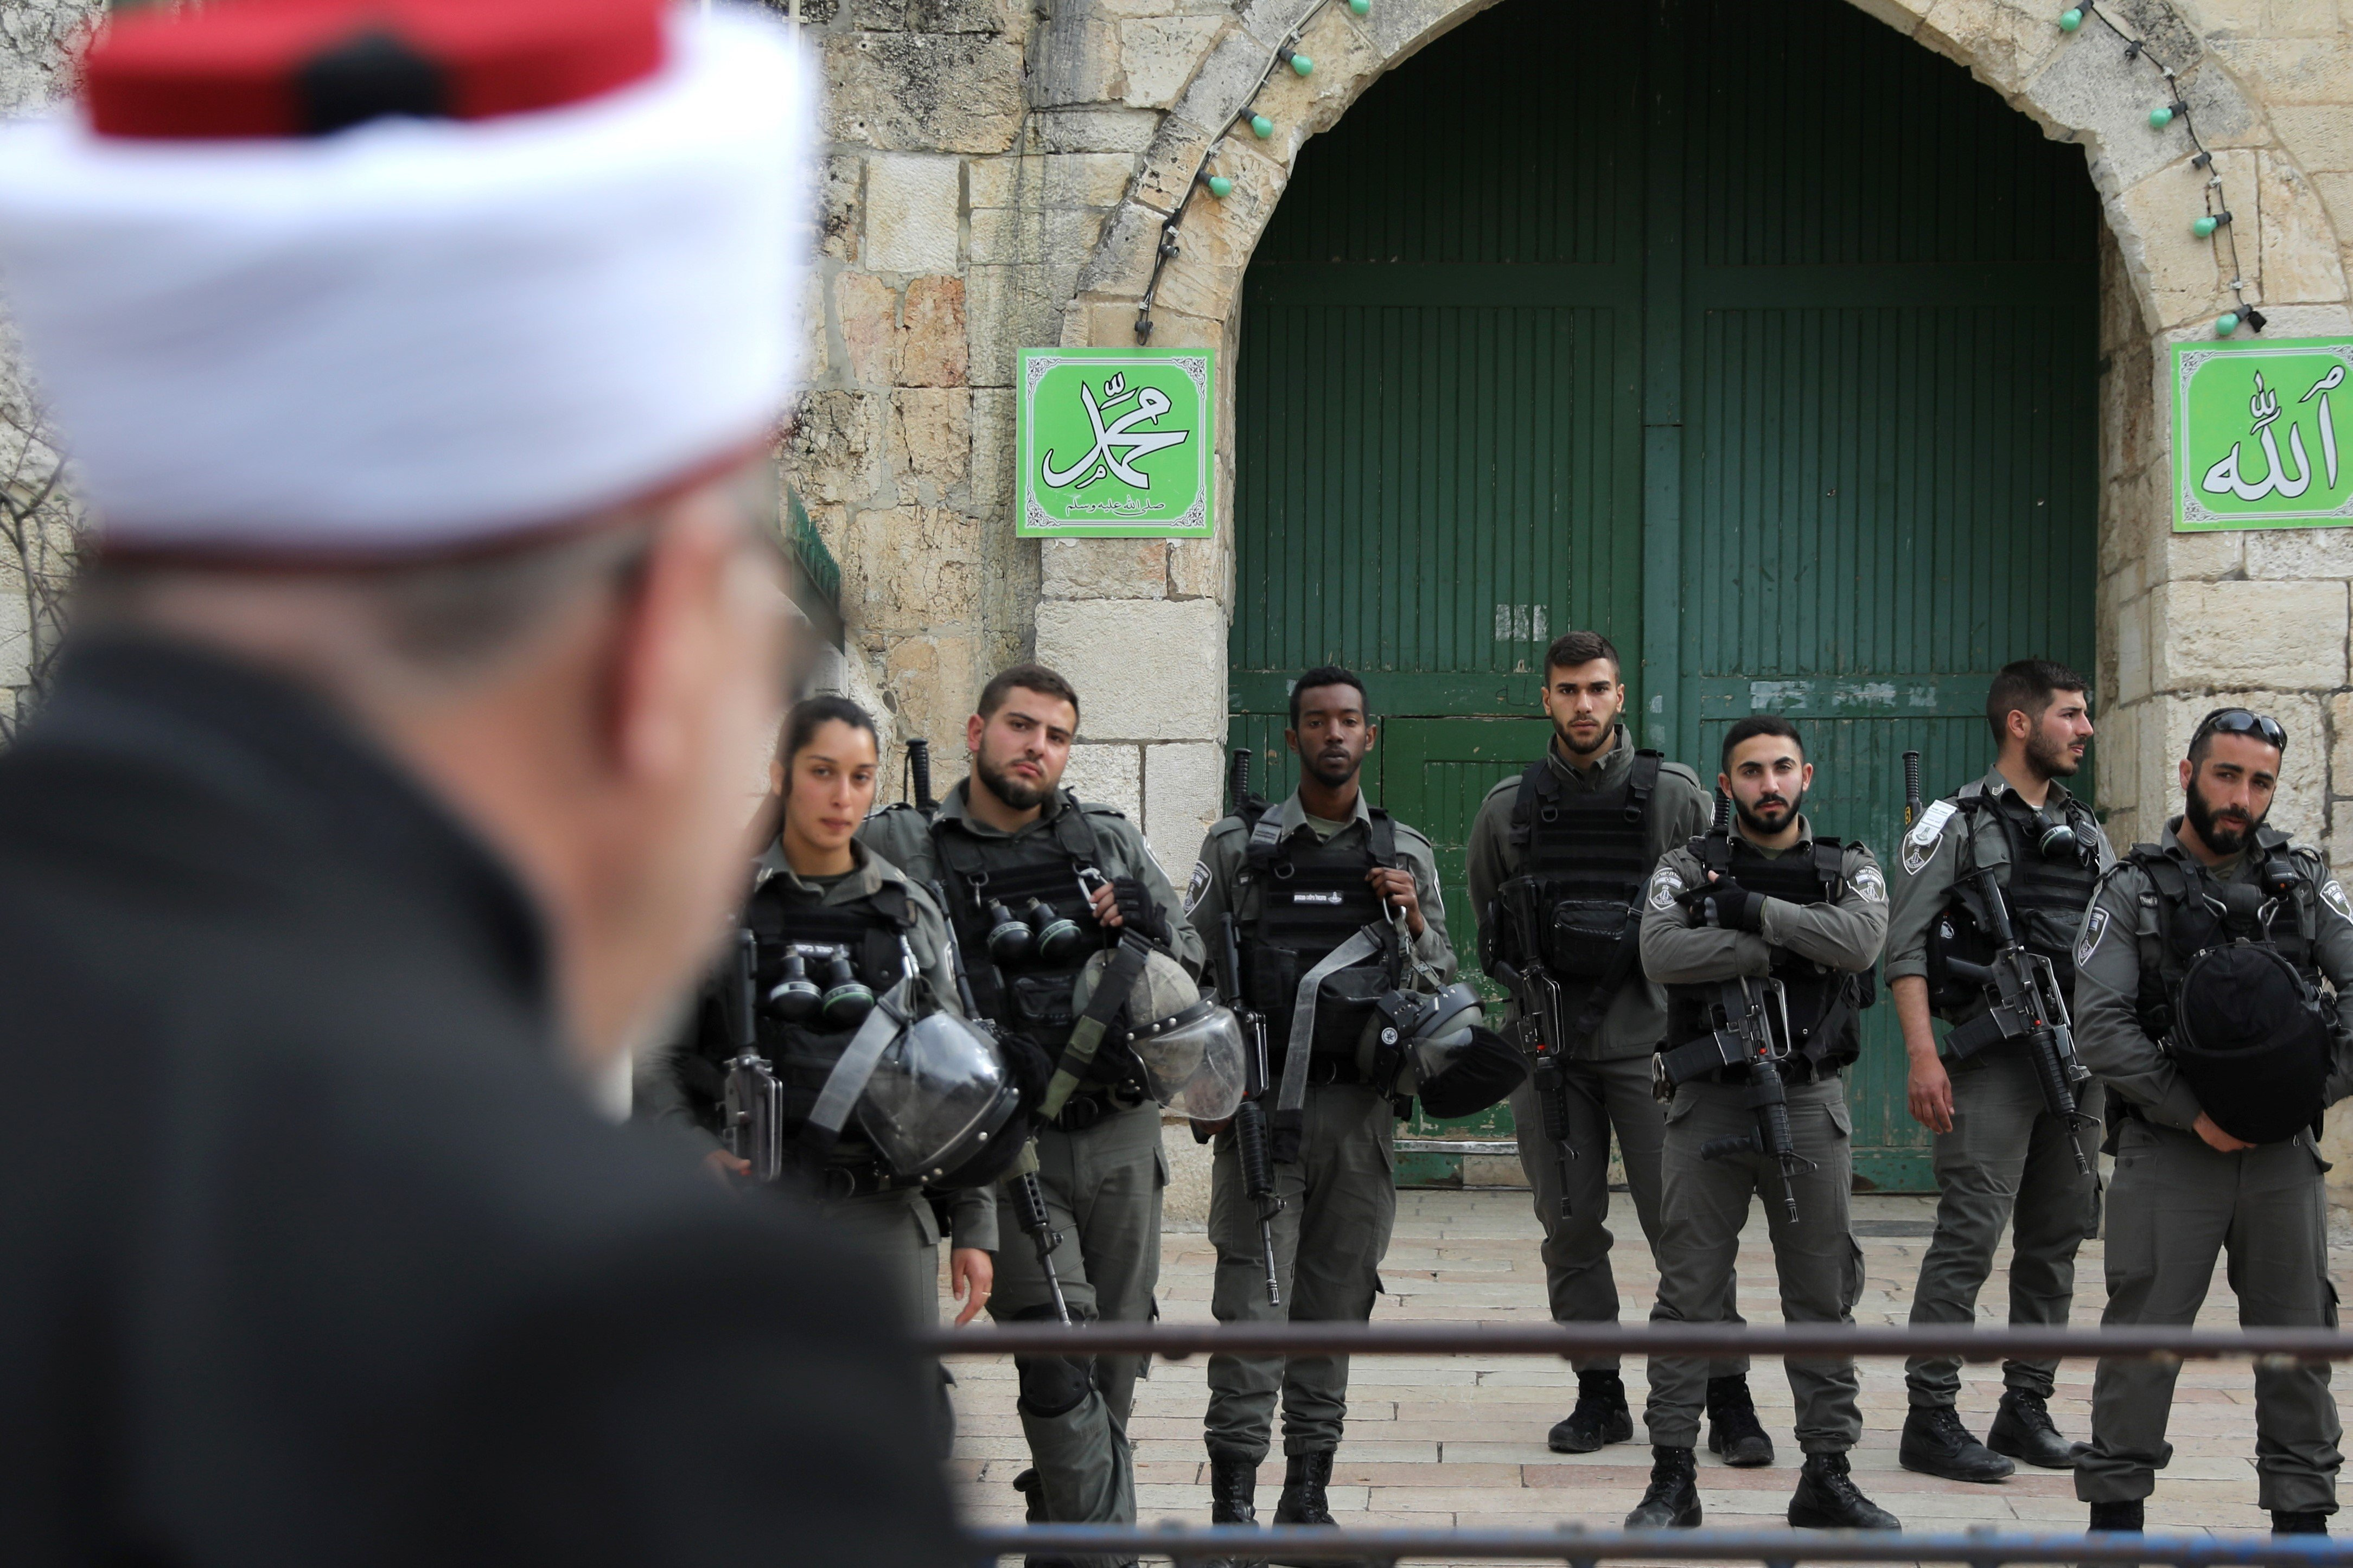 Israeli border police stand guard near the entrance door leading to the compound housing al-Aqsa Mosque in Jerusalem's Old City March 12, 2019. REUTERS